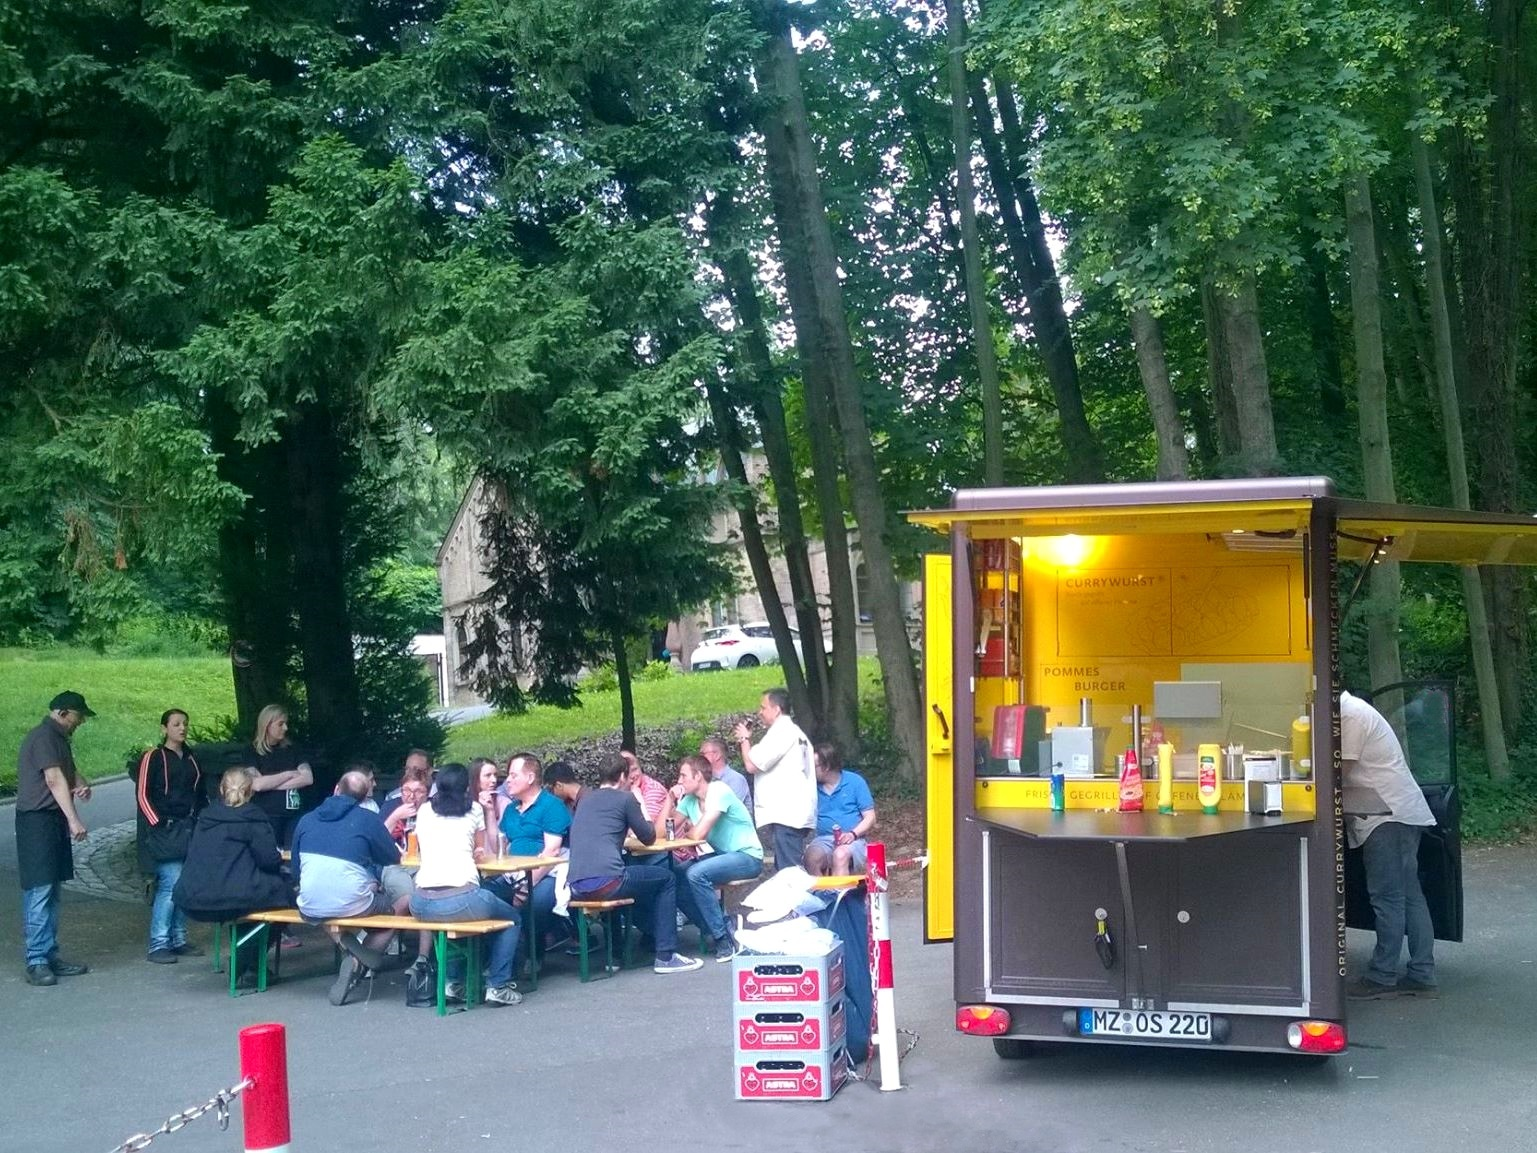 Currywurst Waldfest Party - Catering mit WOW-Effekt